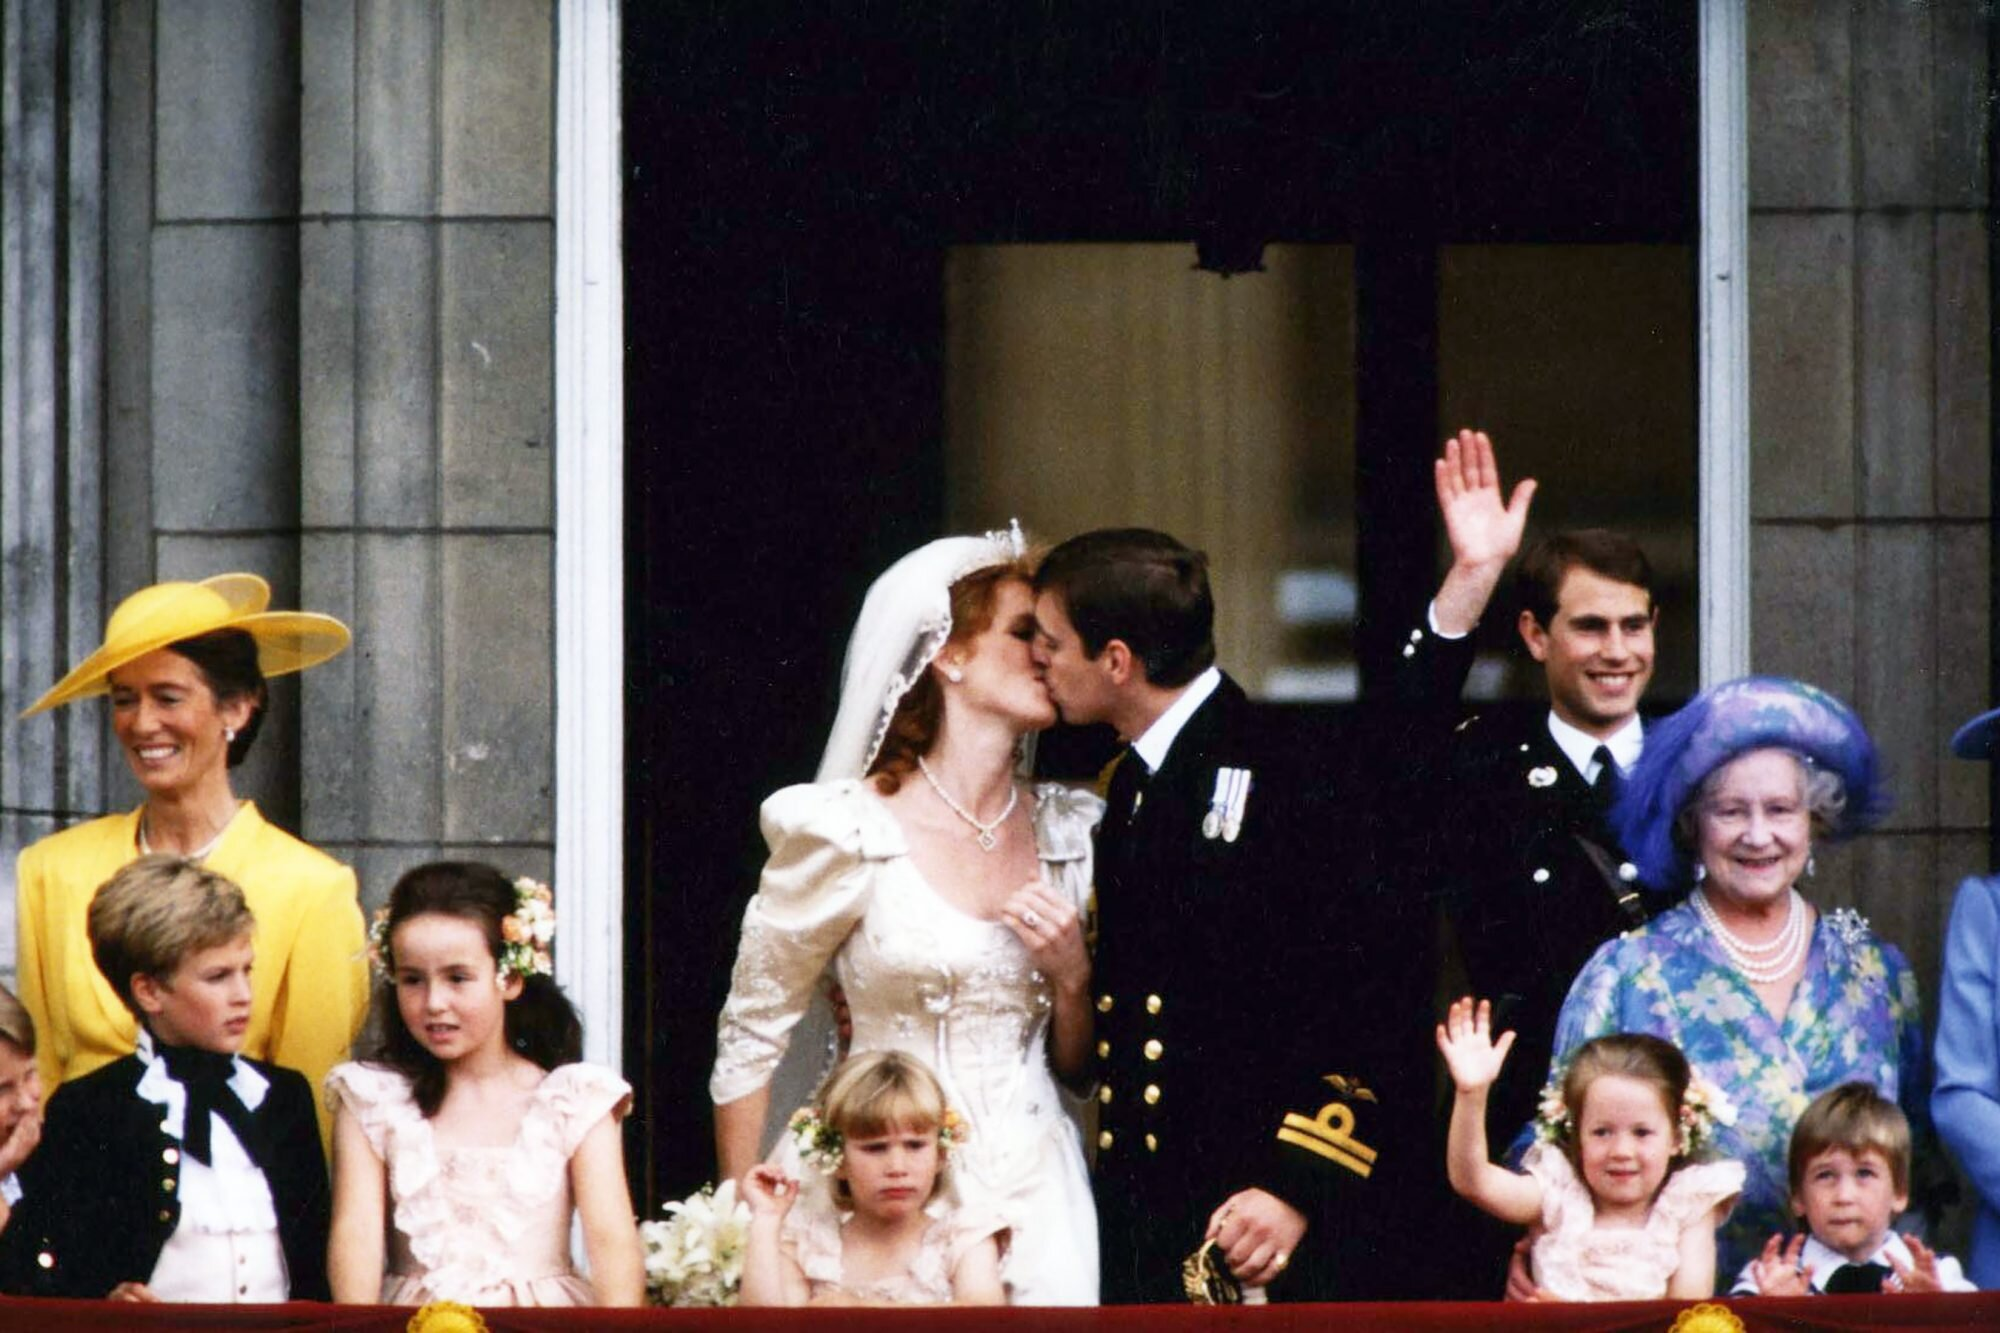 Scenes From the Balcony at Buckingham Palace After the Wedding of Prince Andrew, Duke of York to Sarah Ferguson